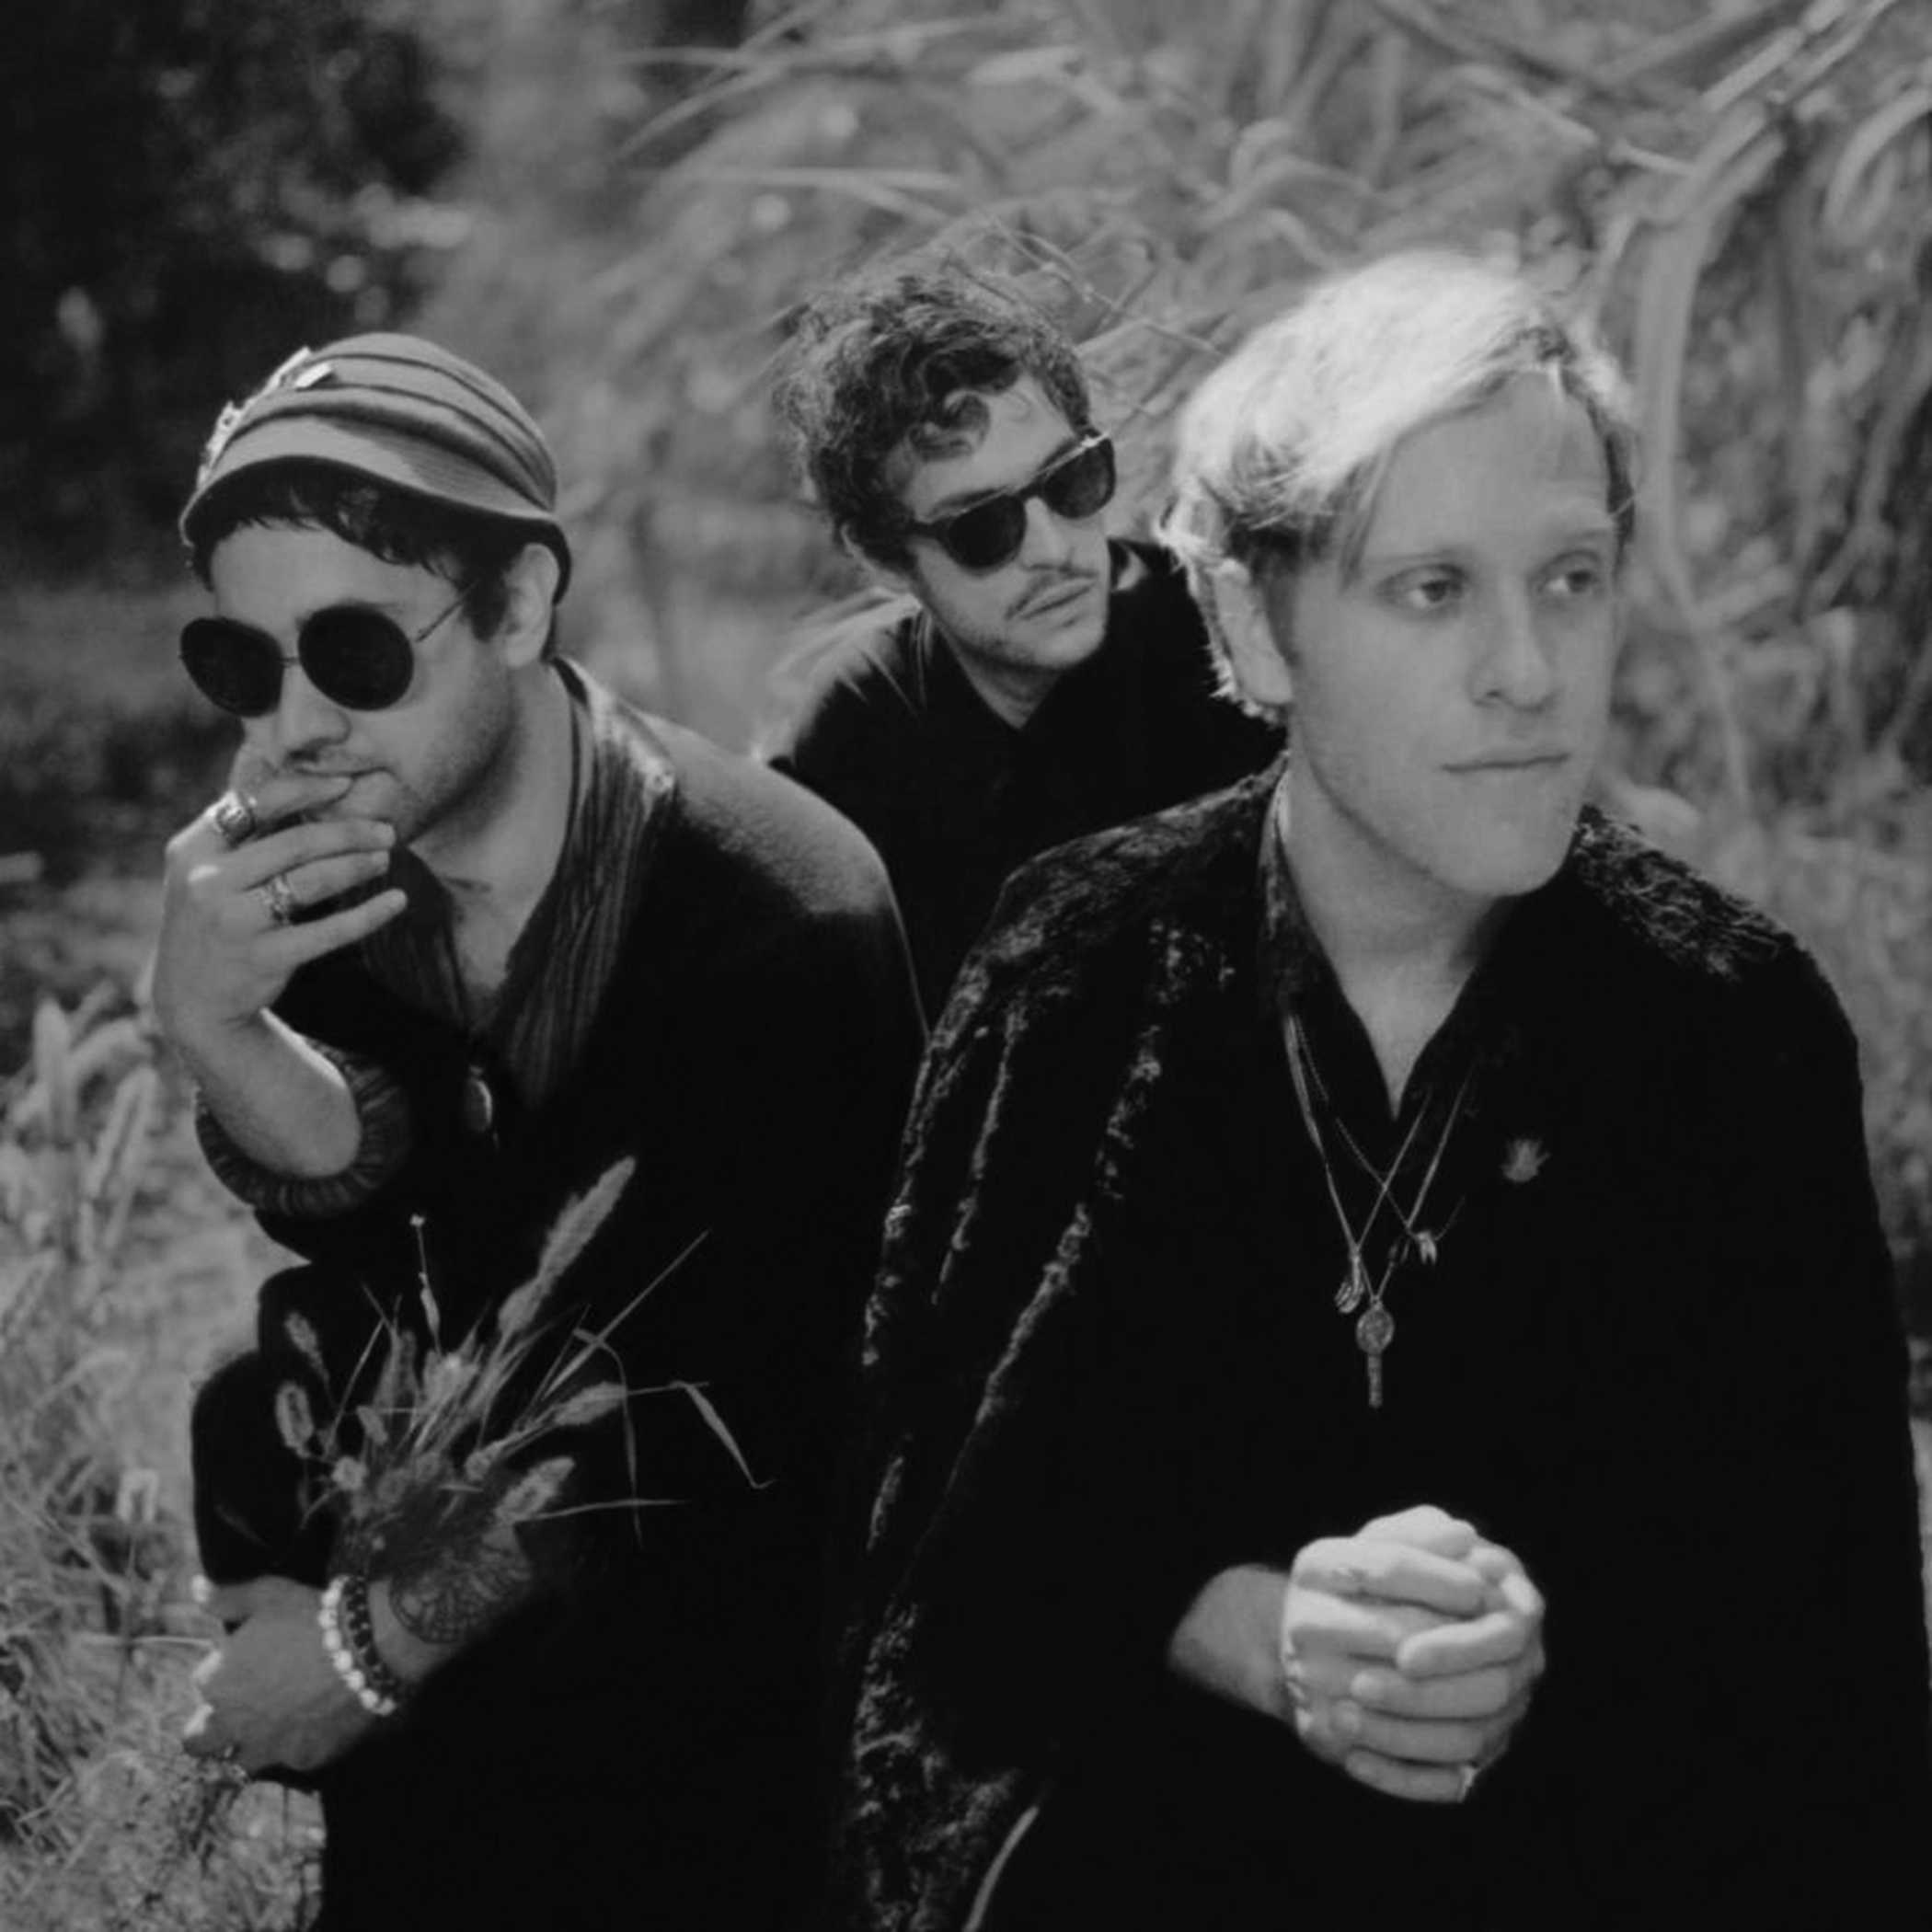 Uknown Mortal Orchestra will perform at the Lowbrow Palace on Friday, Feb 5.